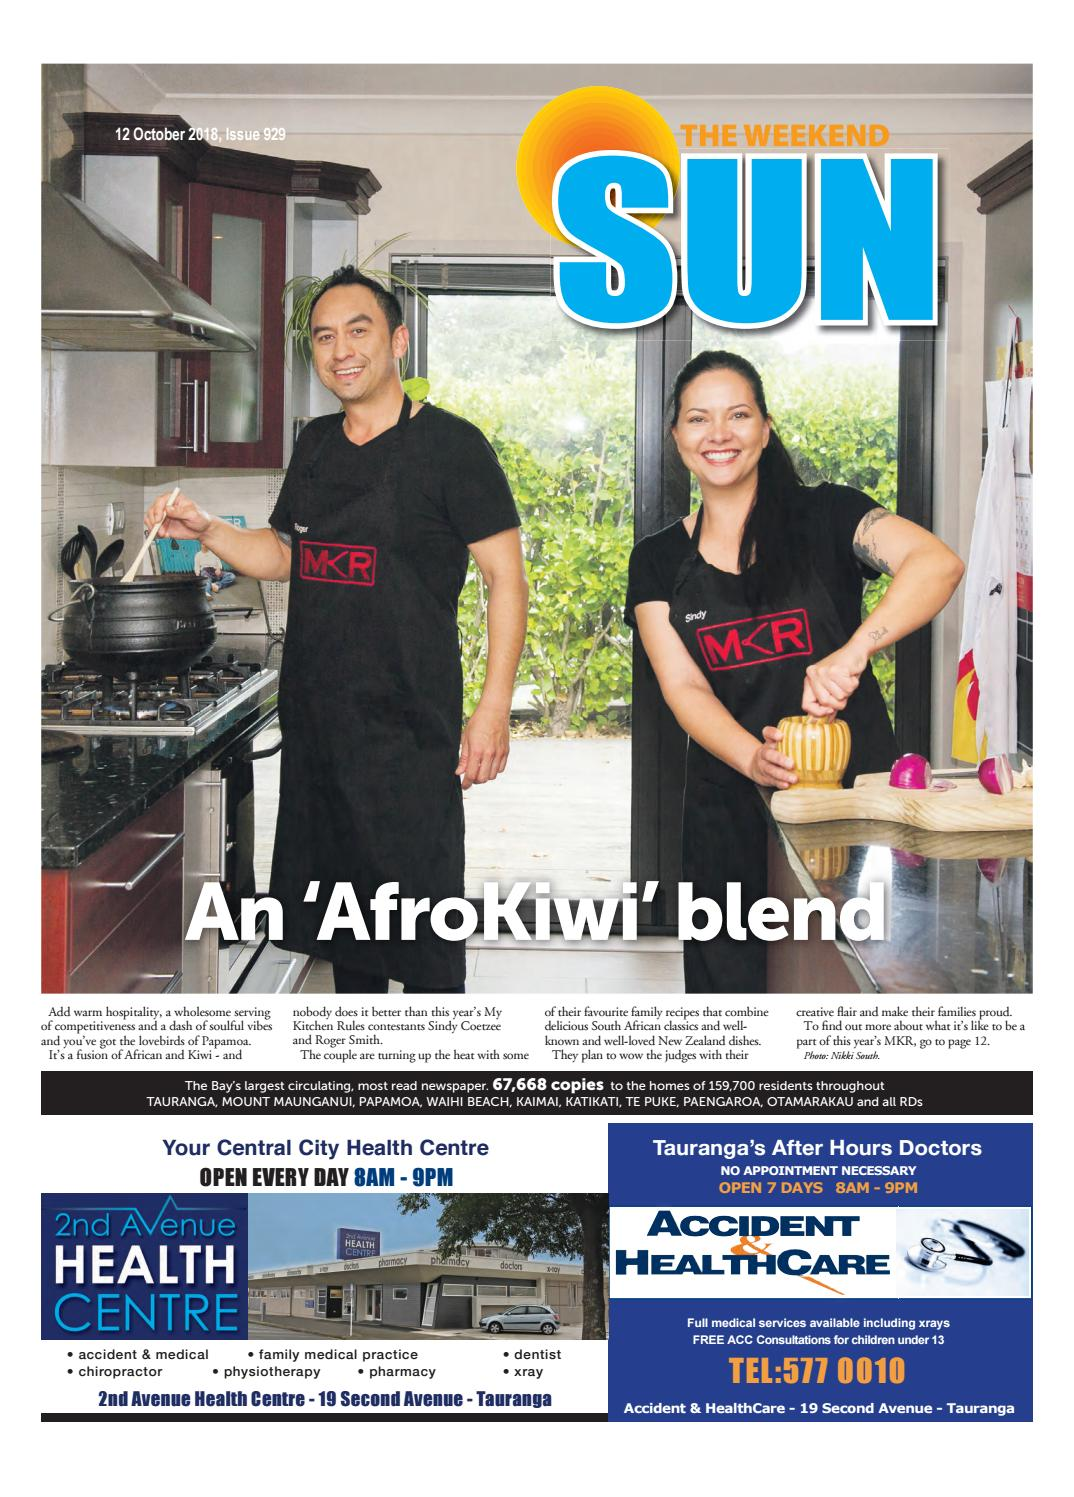 The Weekend Sun - 12 October 2018 by Sun Media - issuu